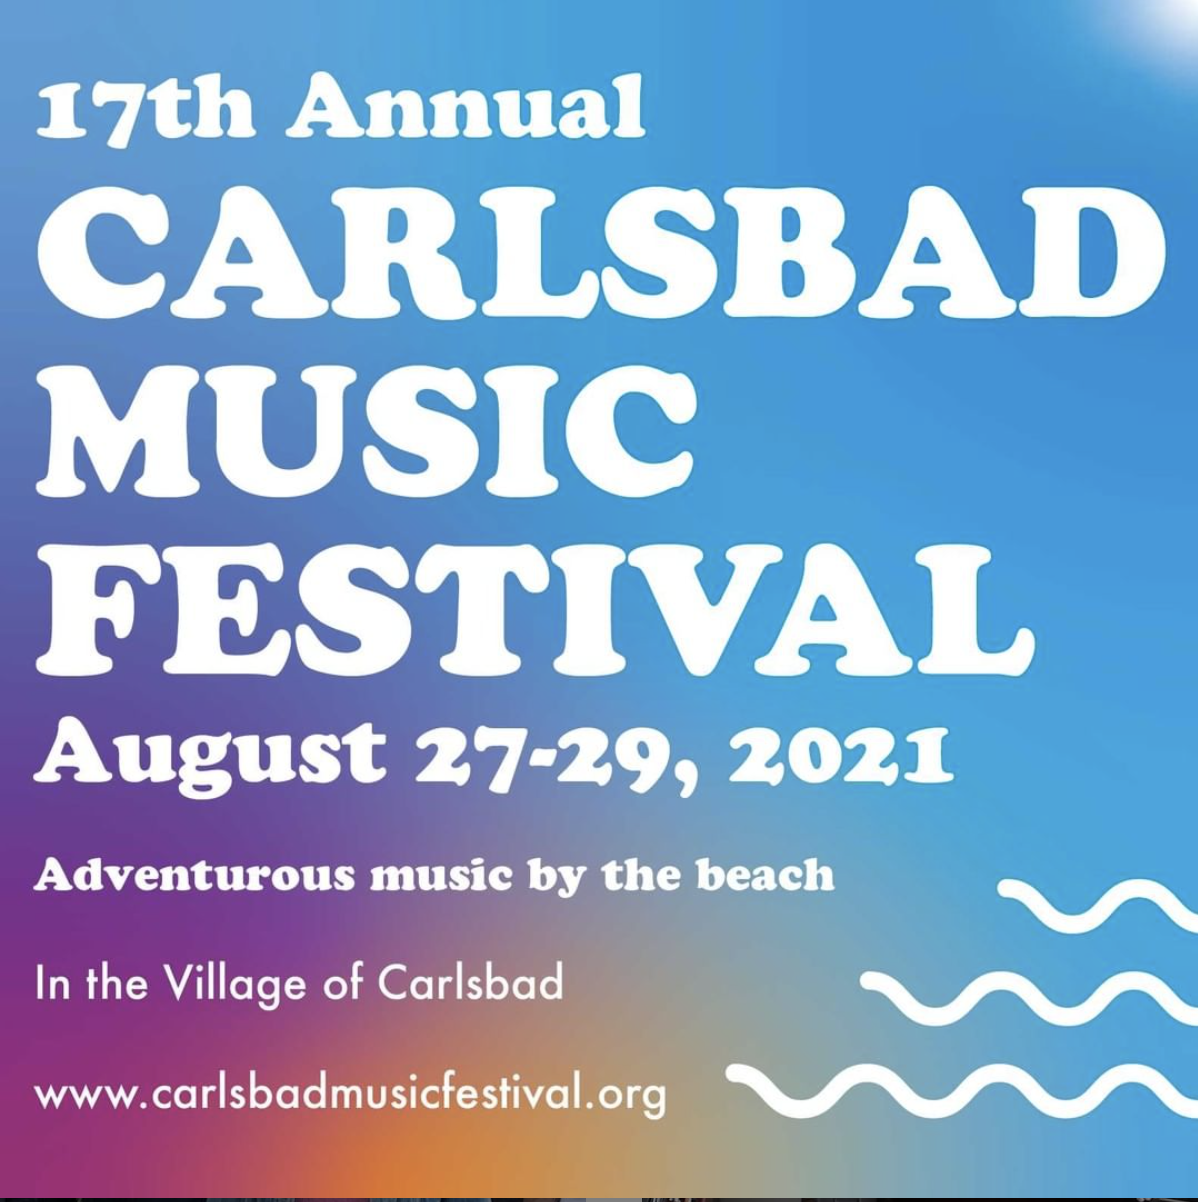 The 17th Annual Carlsbad Music Festival is Back - and its Music to Our Ears